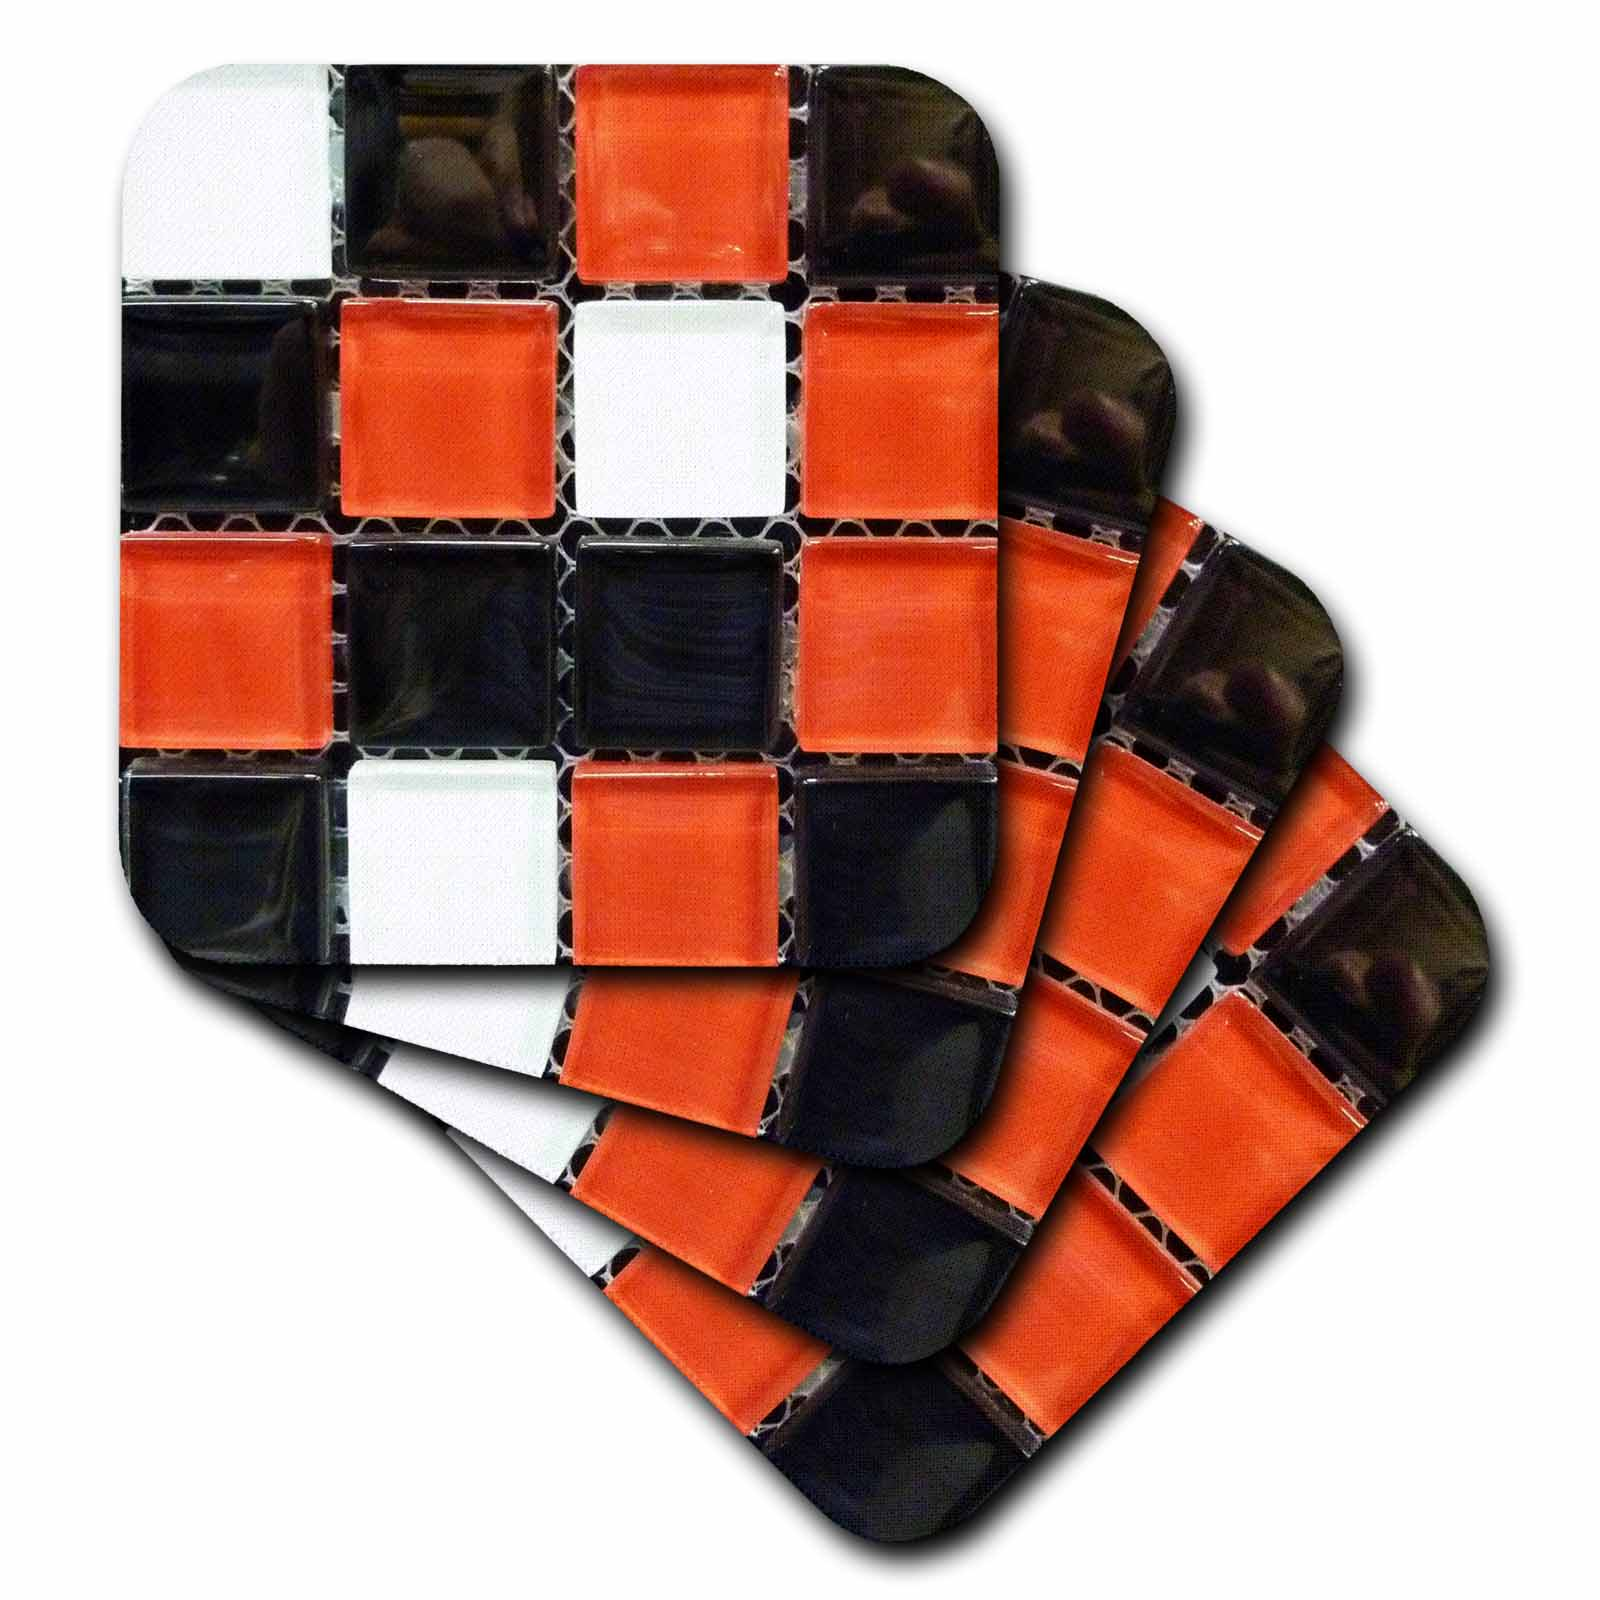 3dRose Black White n Red Glass Tiles On Grid, Soft Coasters, set of 4